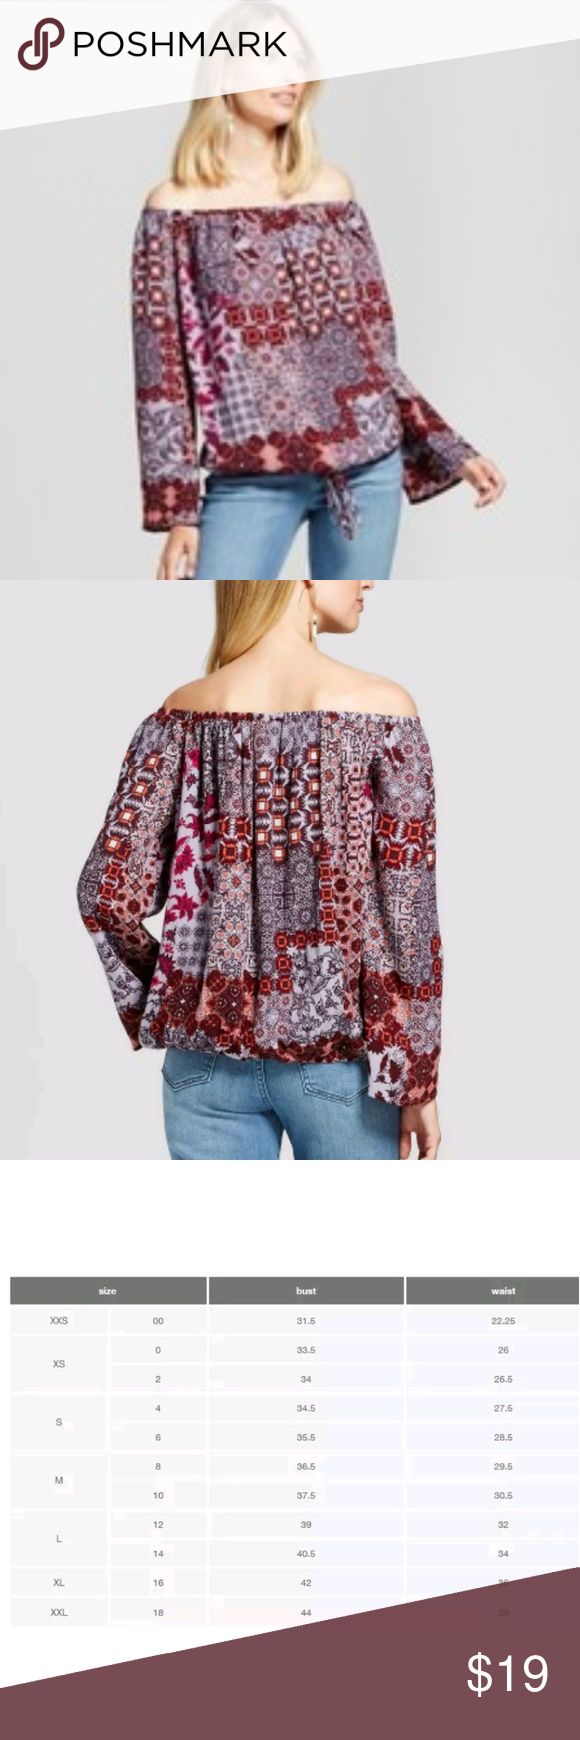 Arriving Next Week! Boho Off Shoulder Printed Top Super chic Boho style off shoulder top.  Beautiful wine colors, lightweight and loose fitting this top can be tied at the waist or down by your hips I you want that bubble effect.    Pairs great with jeans and flare bottoms!  Pictures and measurements pending arrival!   Size XXL 18 Knox Rose Tops Blouses